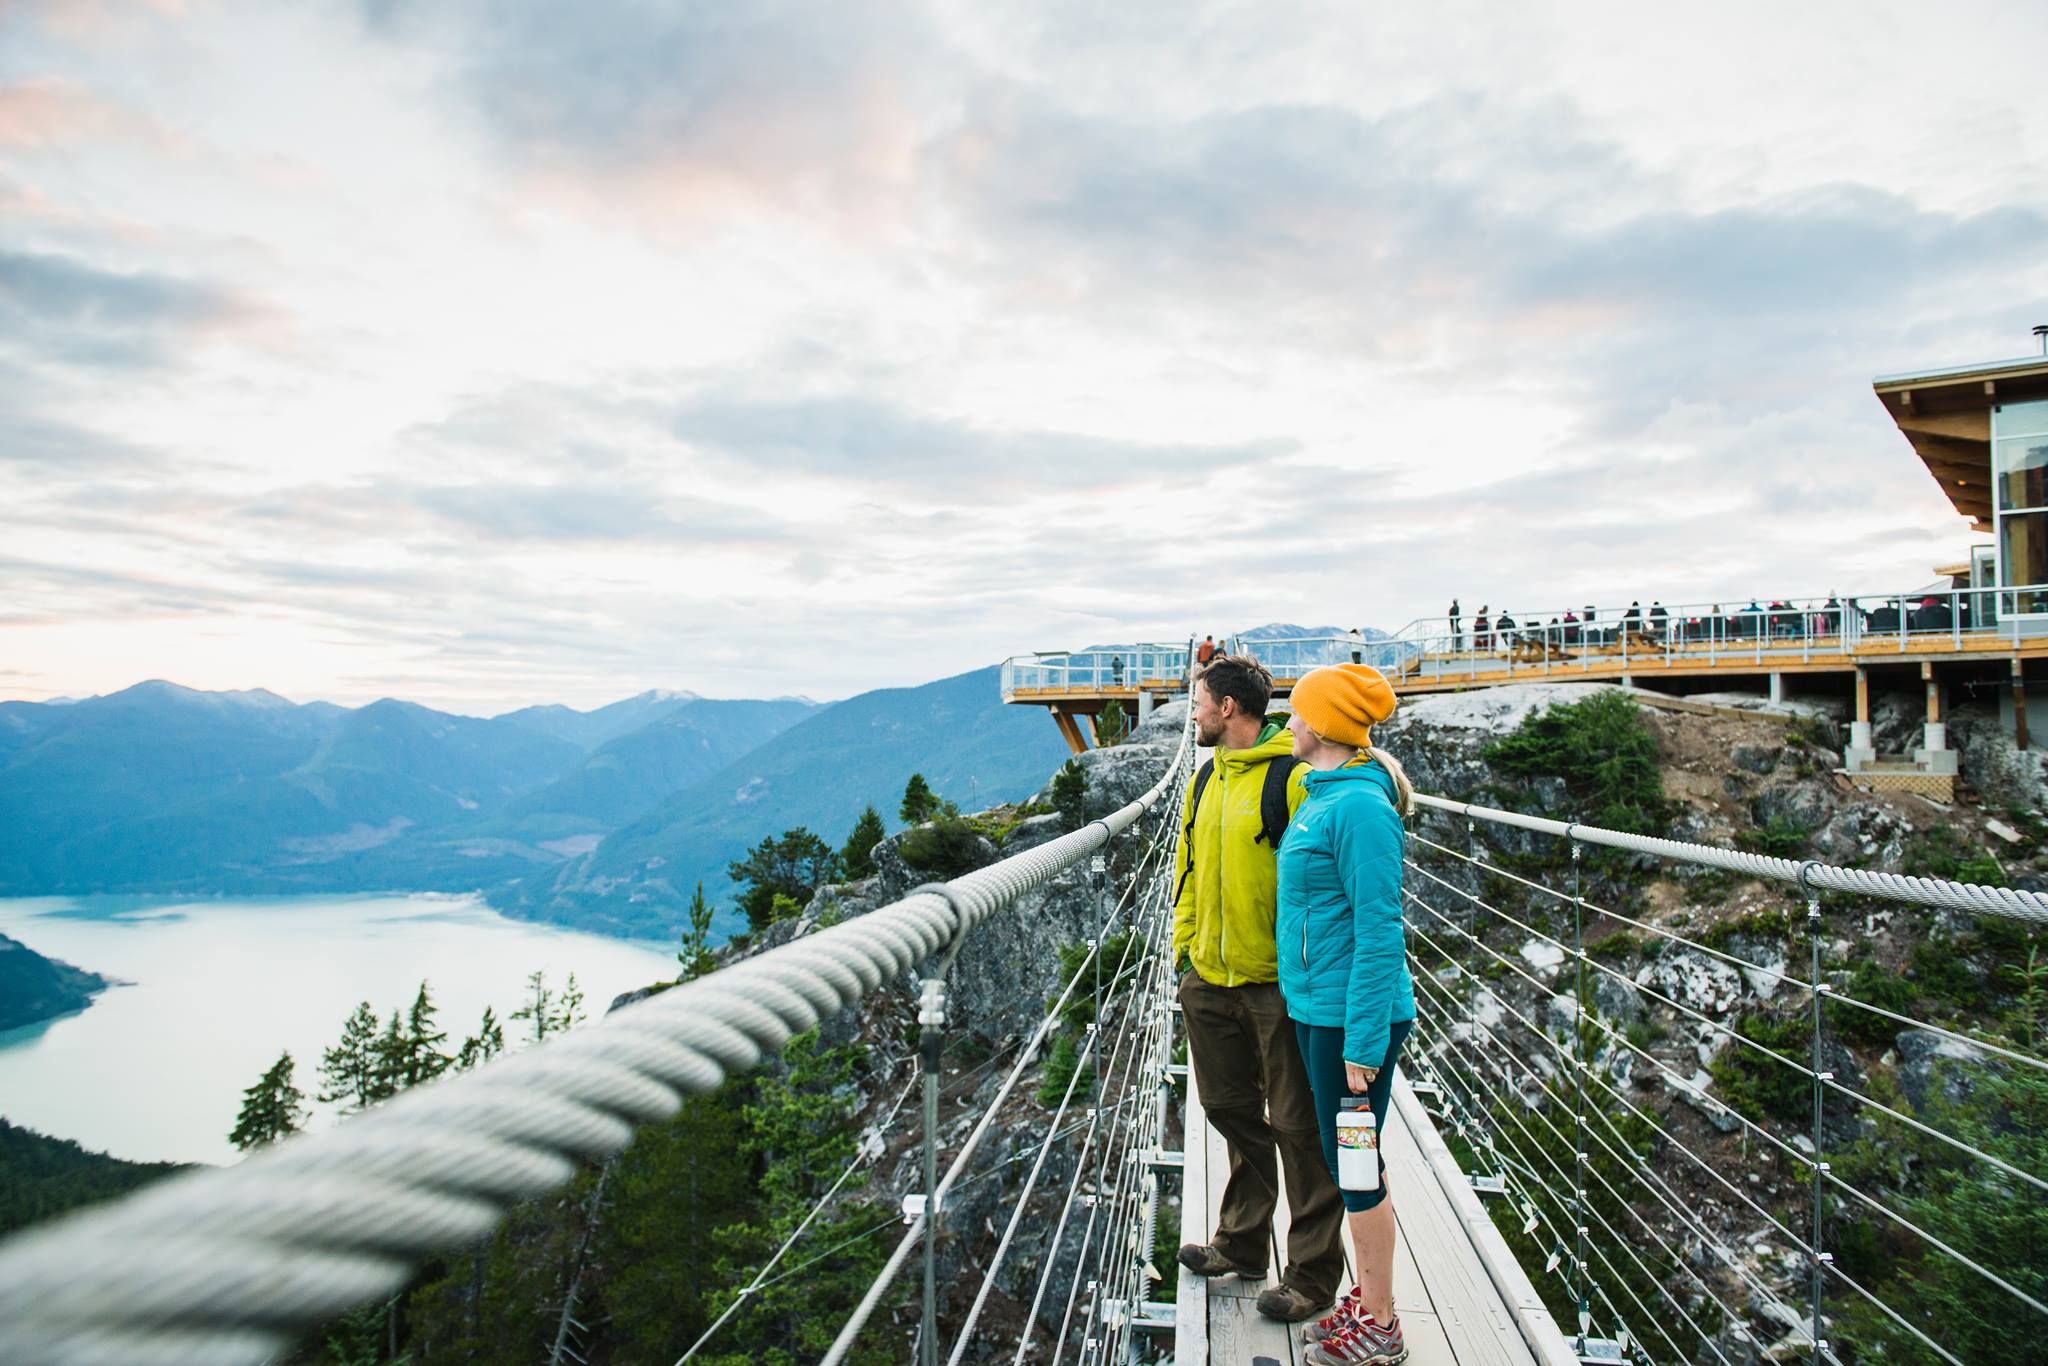 Photo Credit: Sea to Sky Gondola. Photographer: Tara O'Grady http://taraogradyphoto.com/